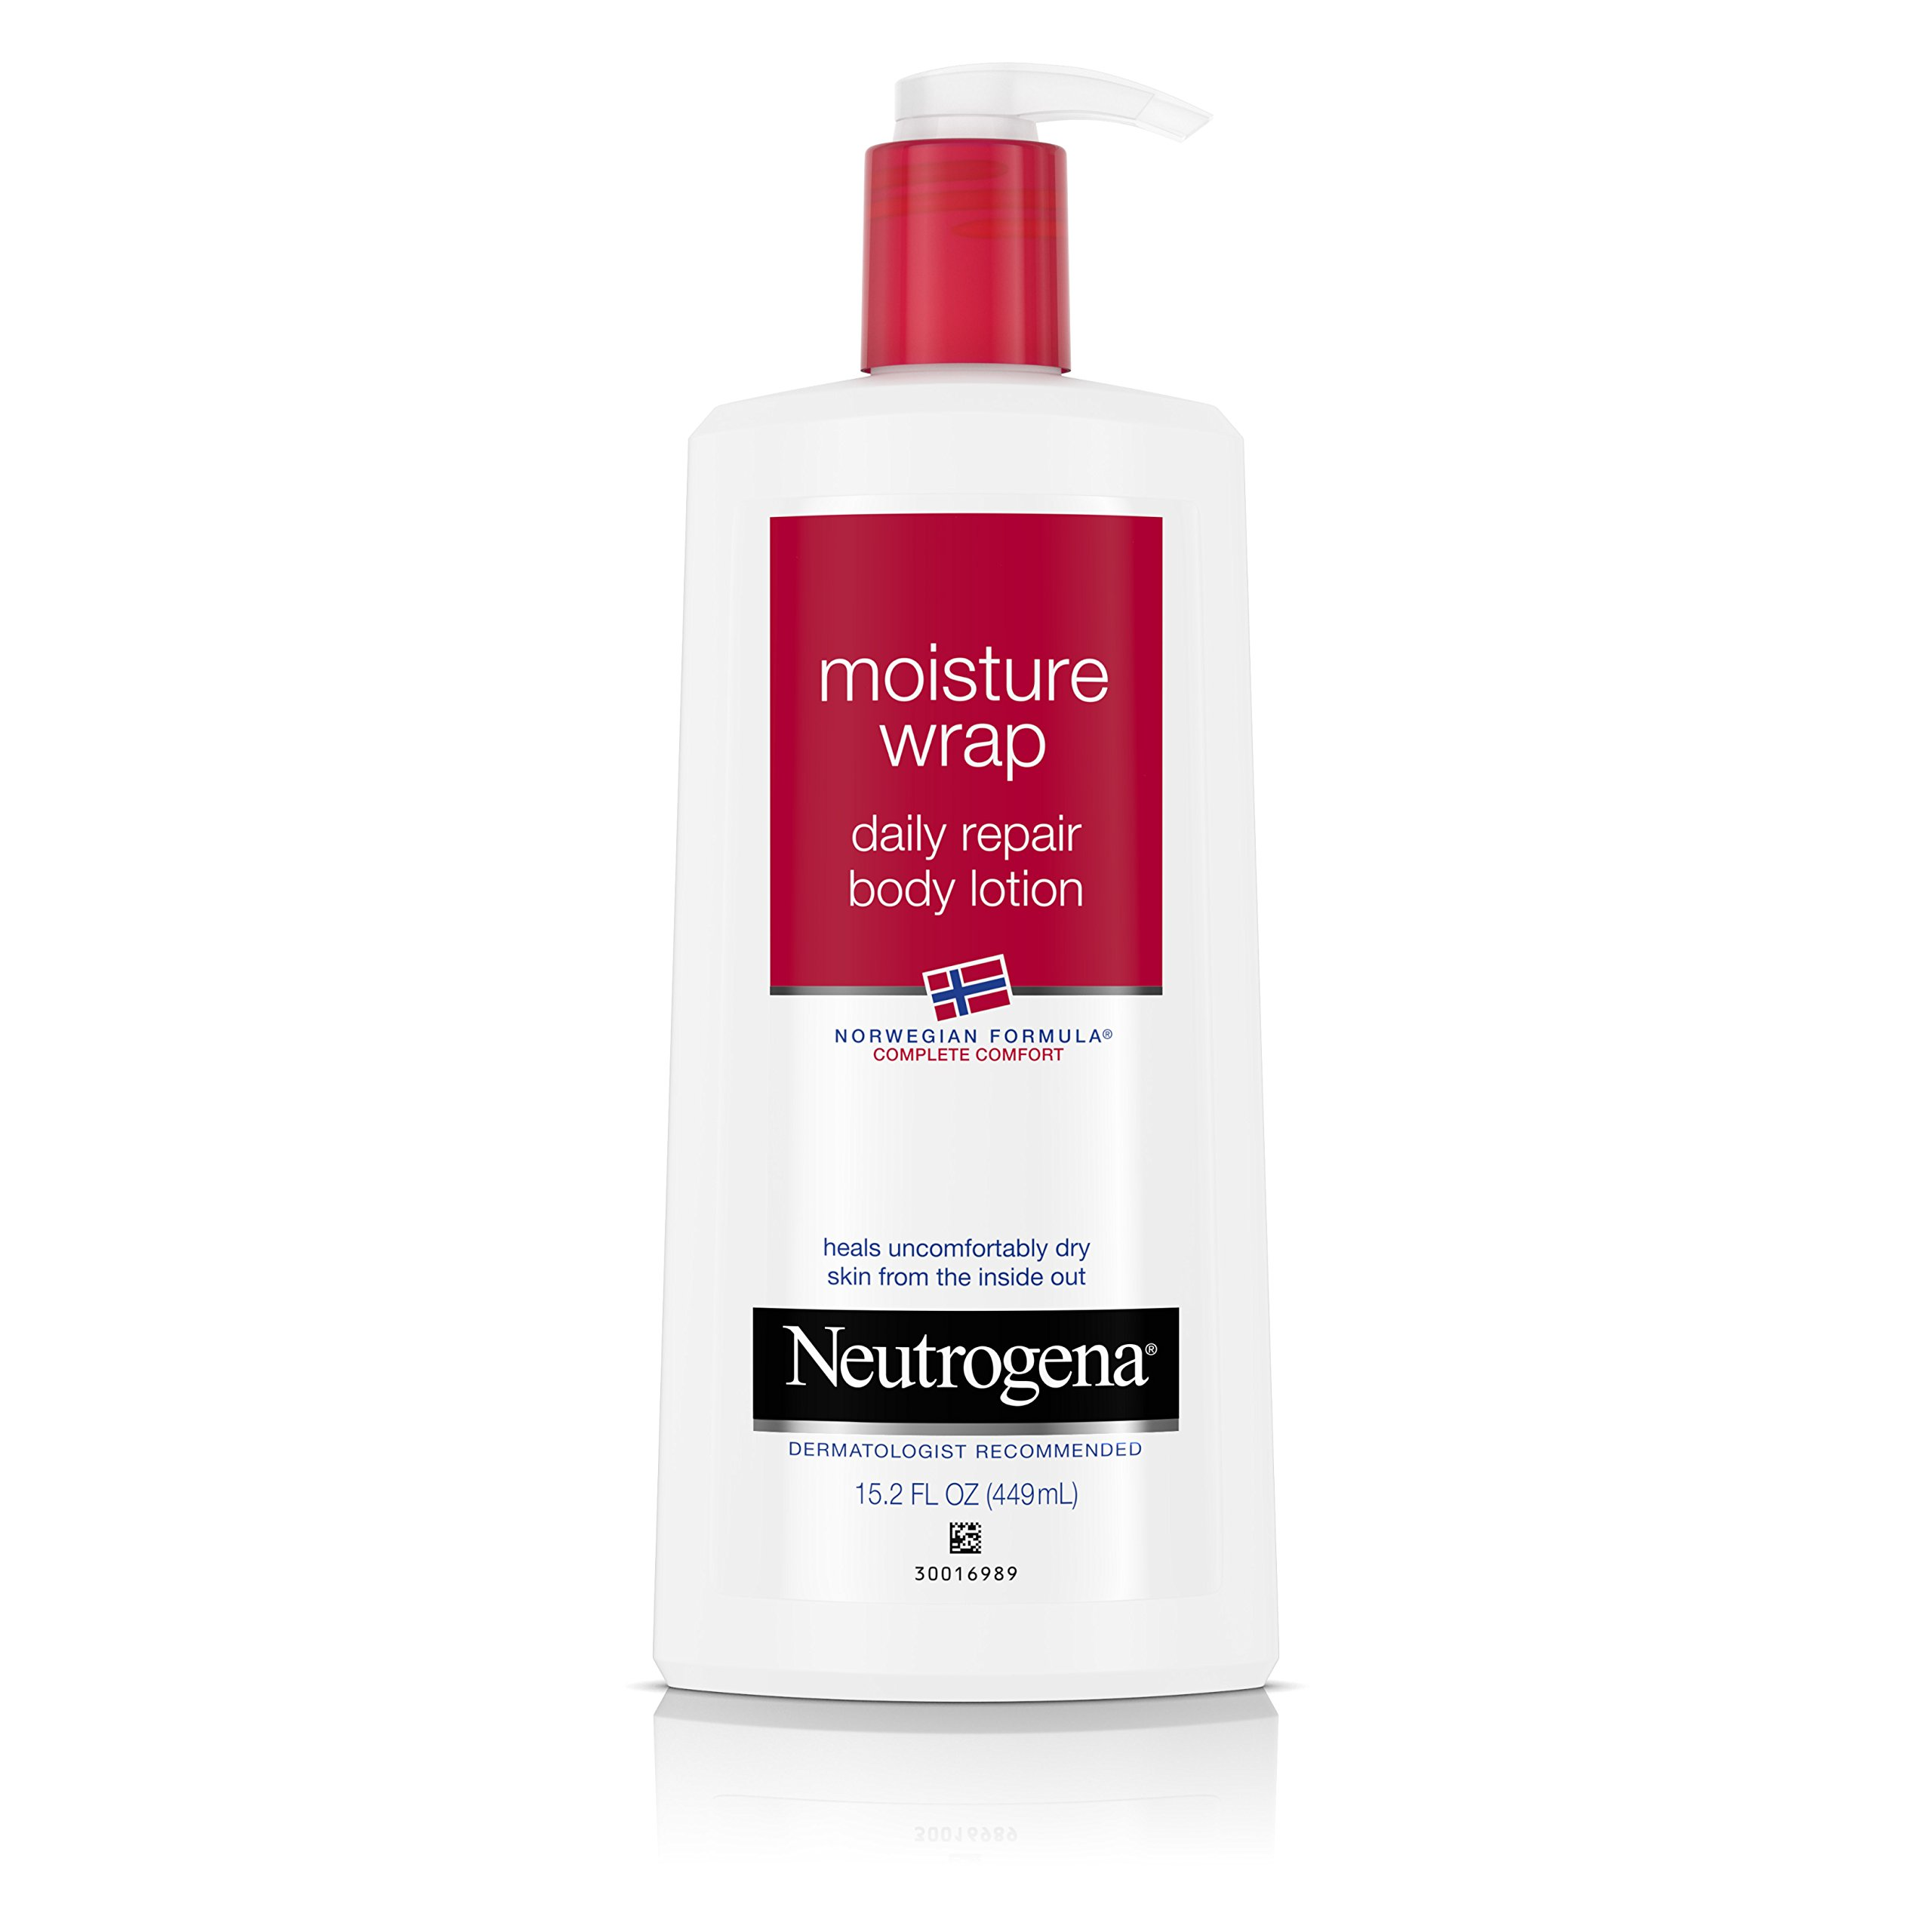 Neutrogena Norwegian Formula Moisture Wrap Daily Repair Body Lotion, 15.2 Oz (Pack of 3)